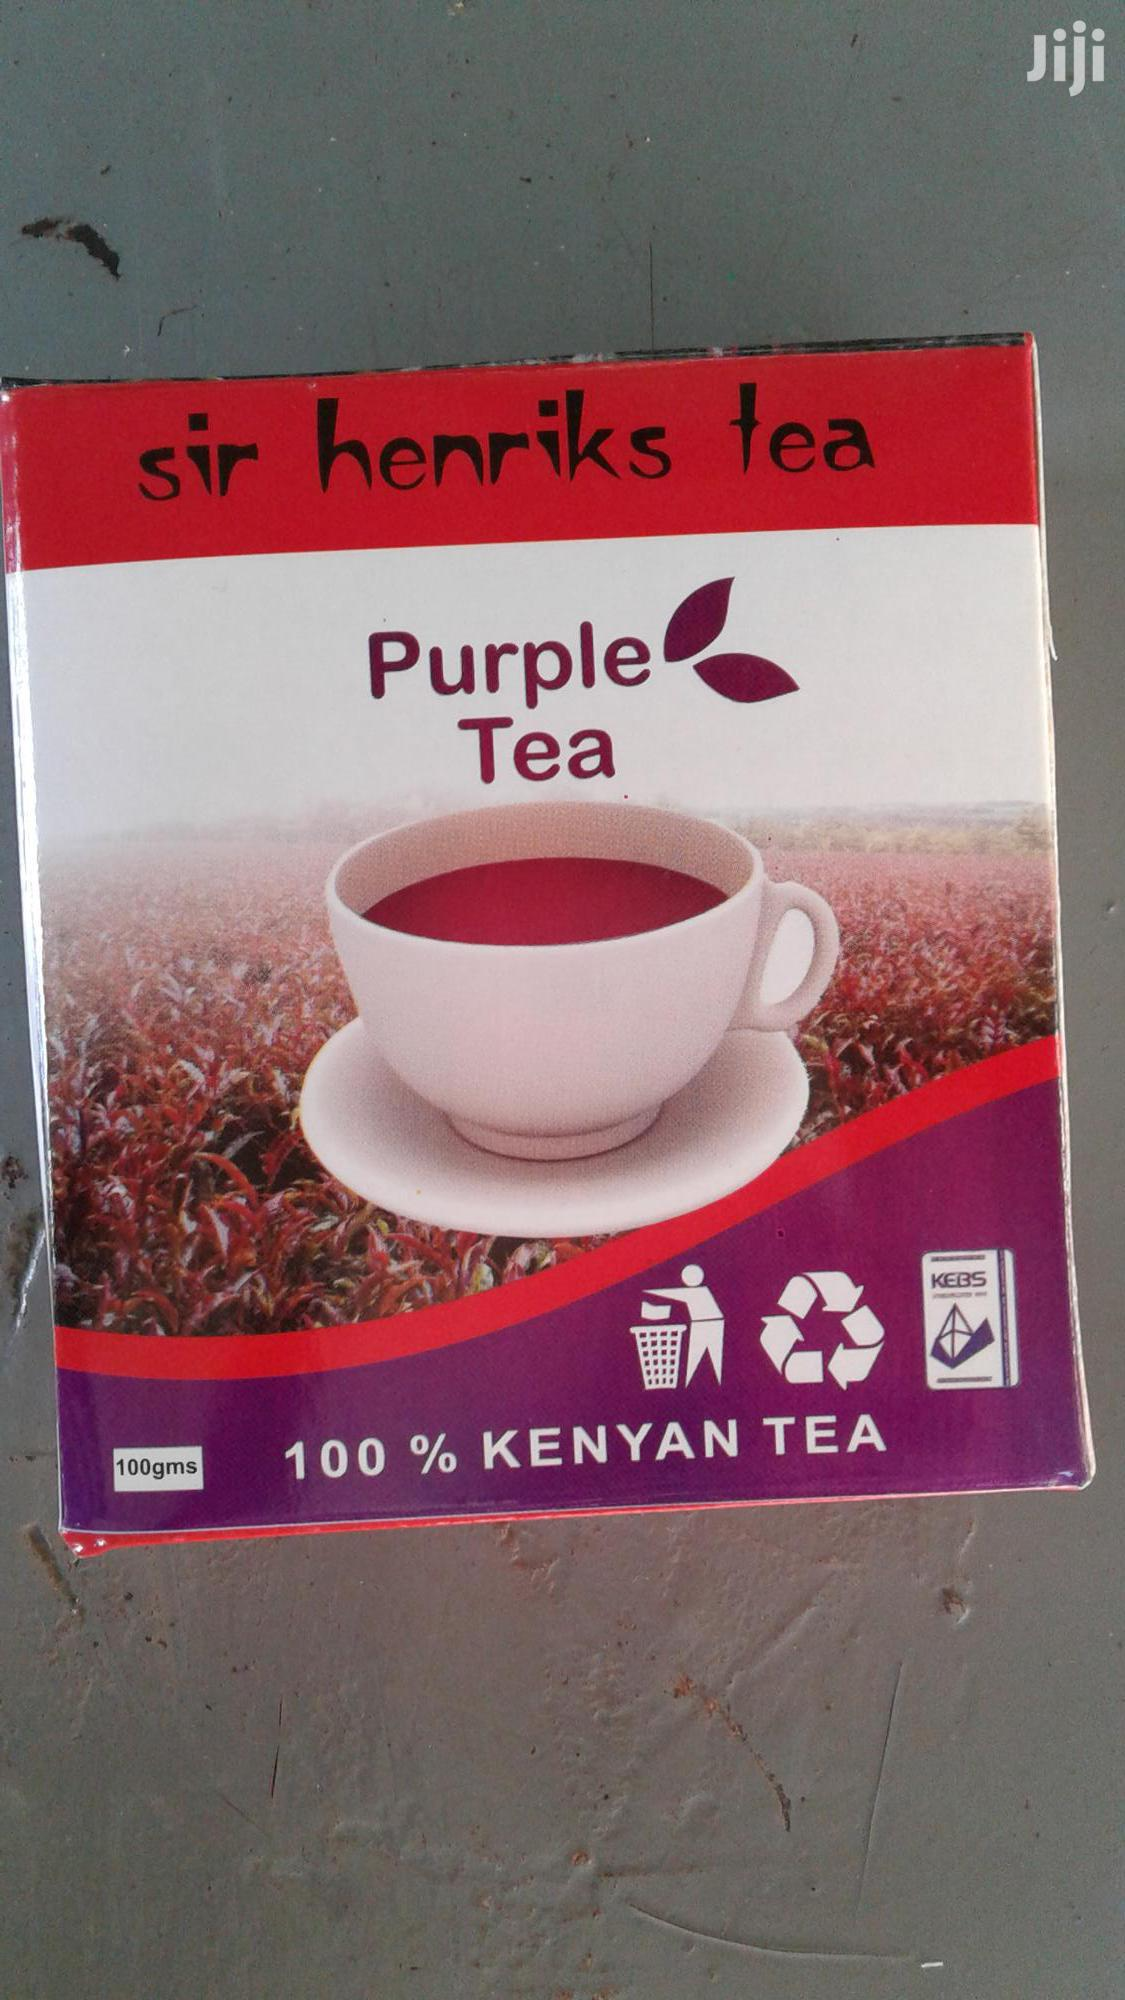 Purple Tea Leaves, Machine Rolled, 100g